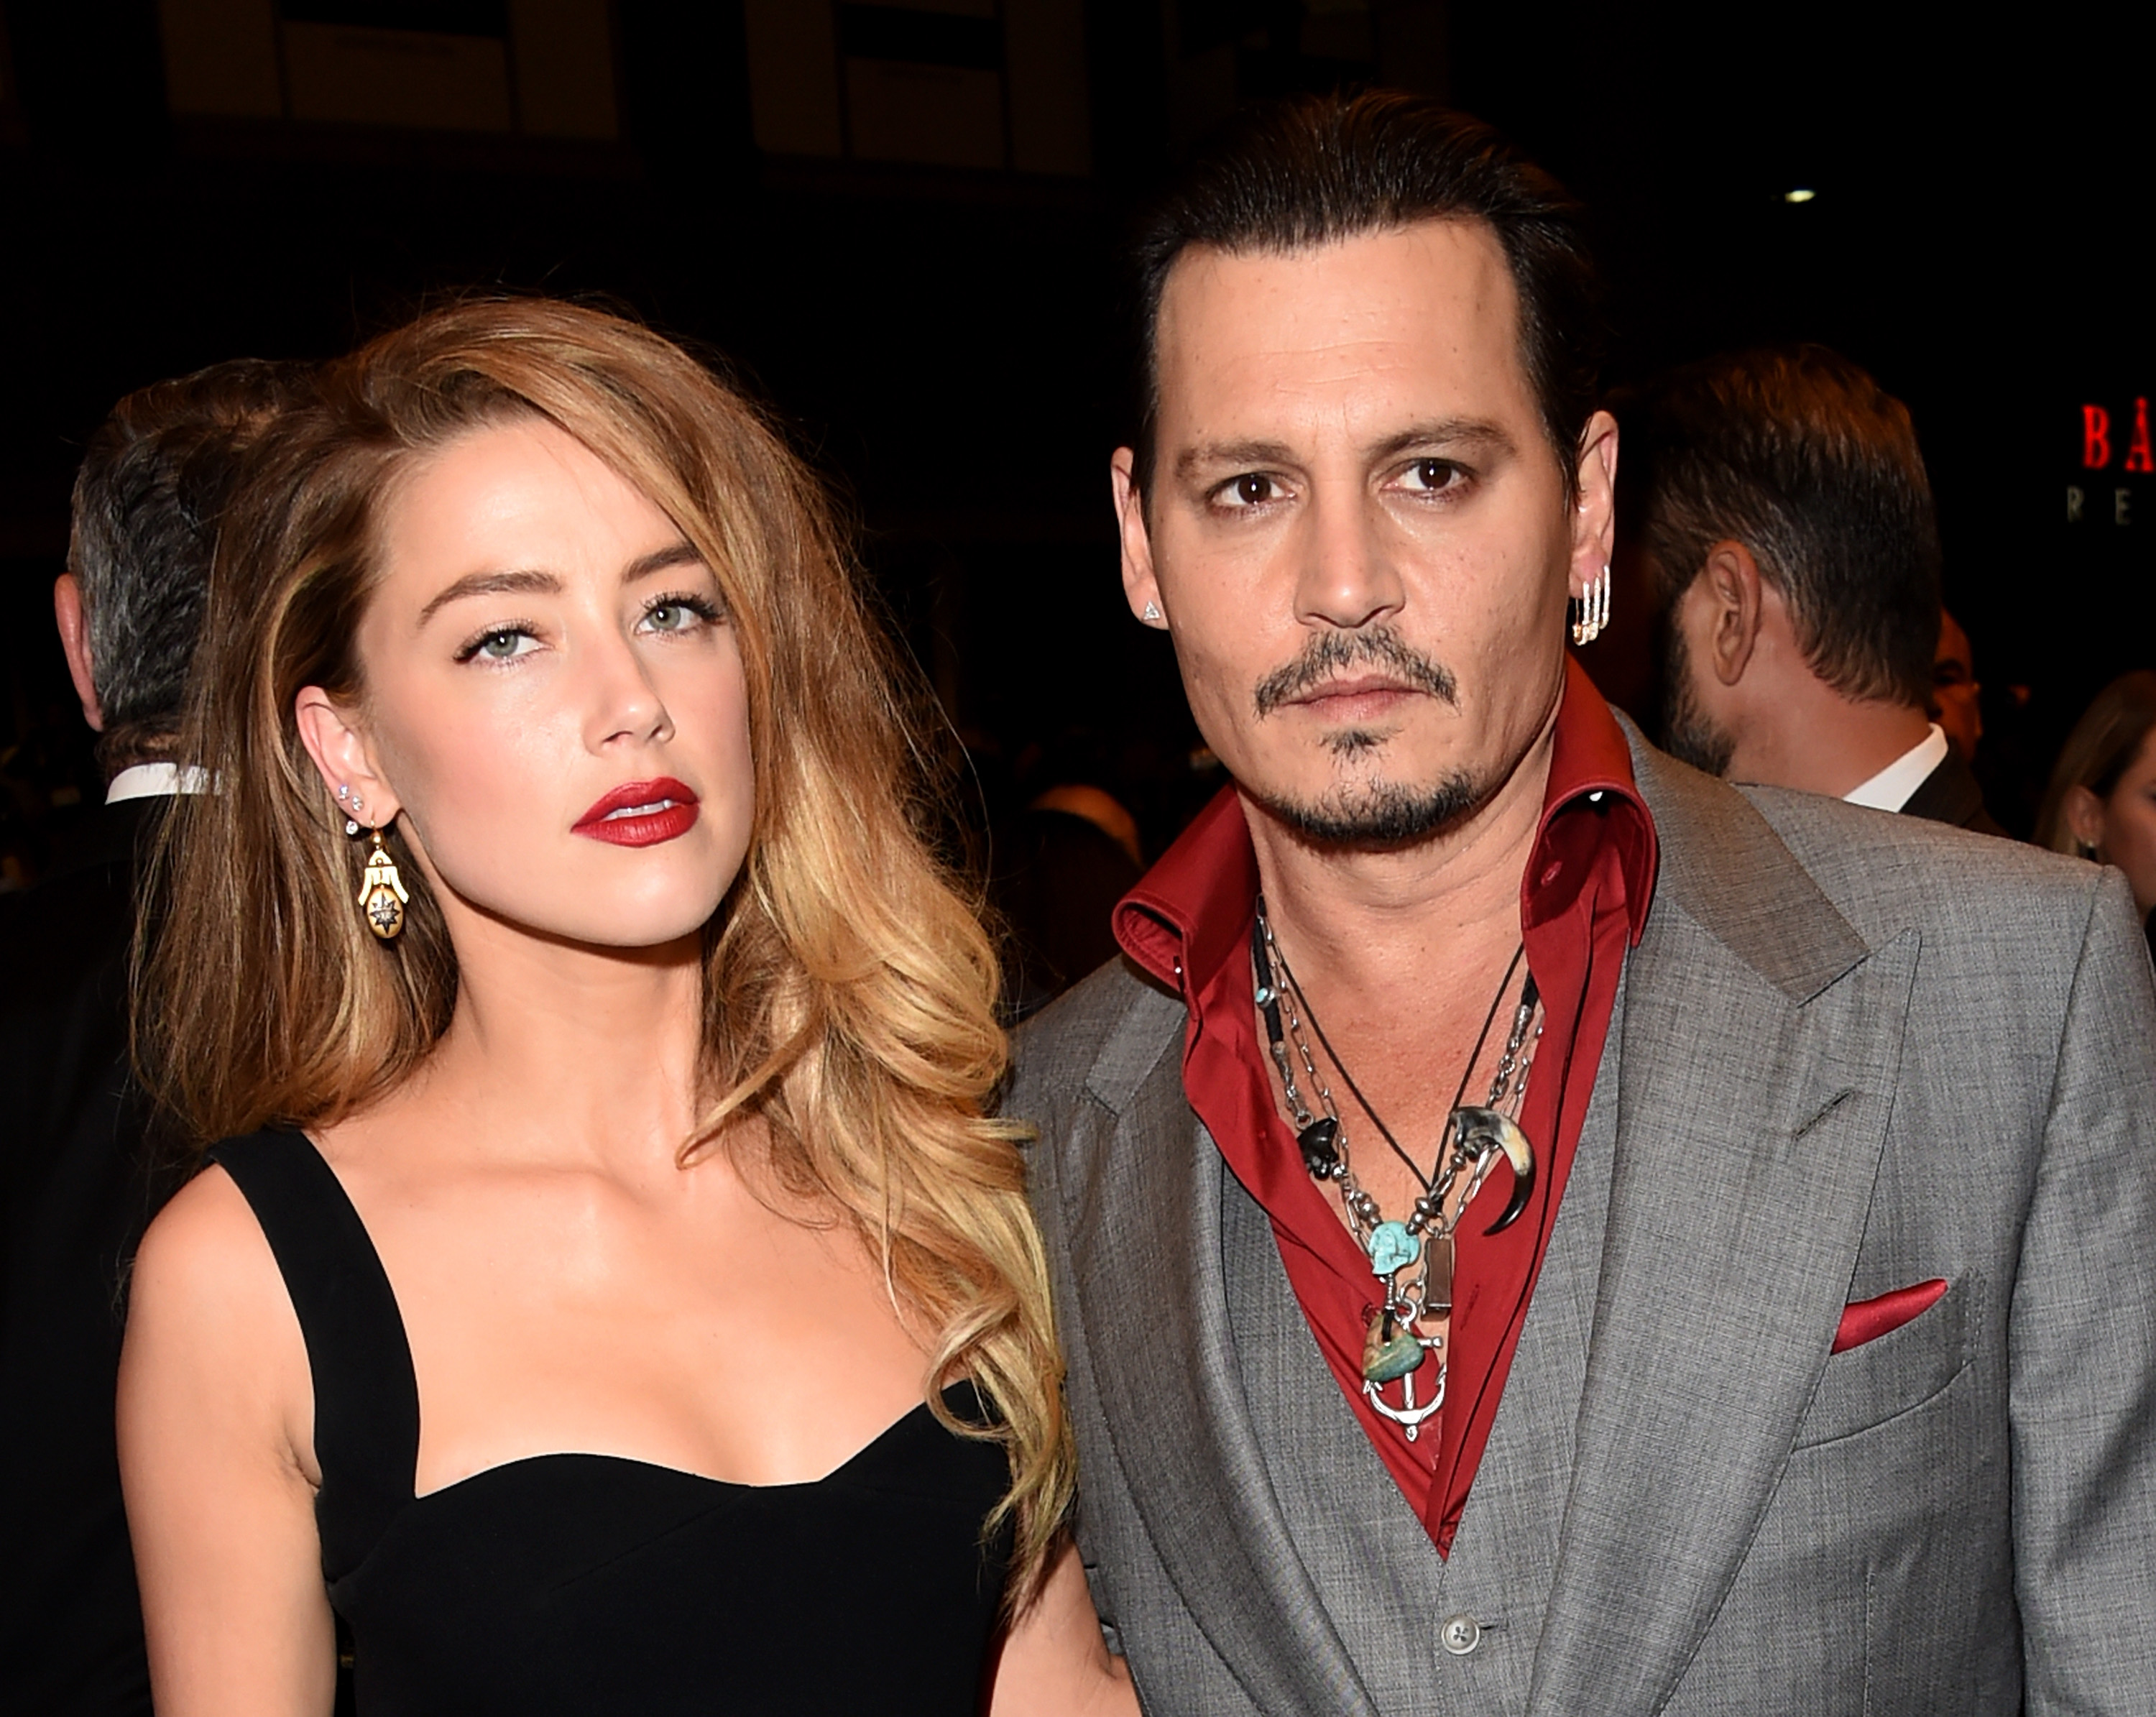 Amber Heard Granted Temporary Restraining Order Against Johnny Depp